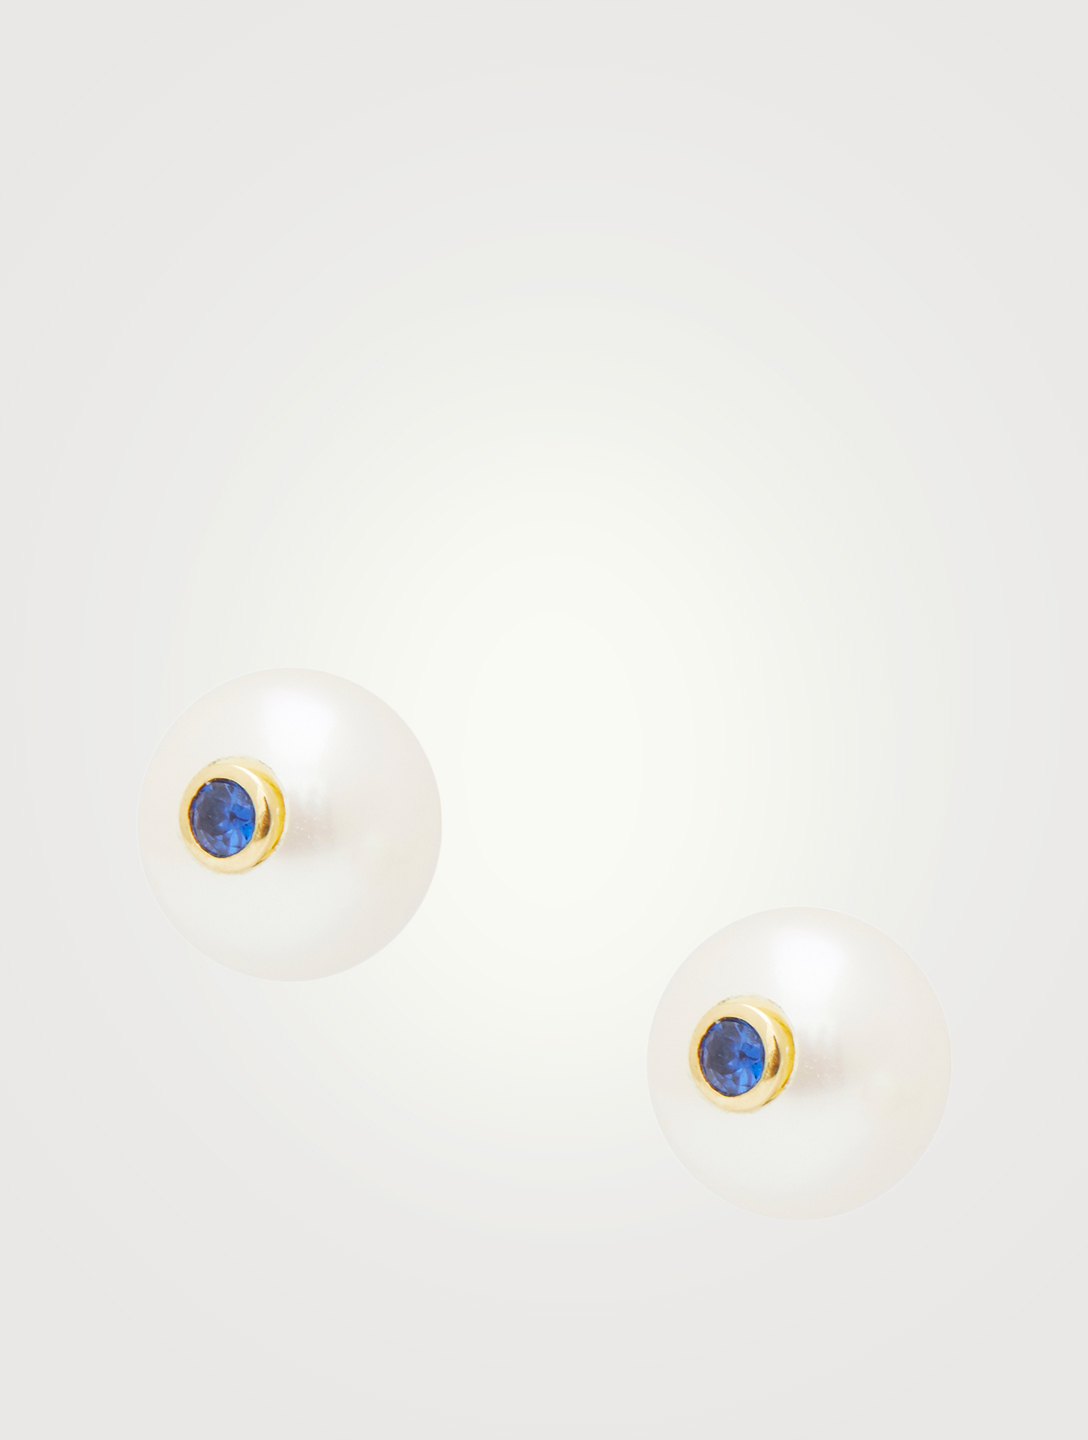 YI COLLECTION 14K Gold Pearl Stud Earrings With Blue Sapphire Women's Metallic